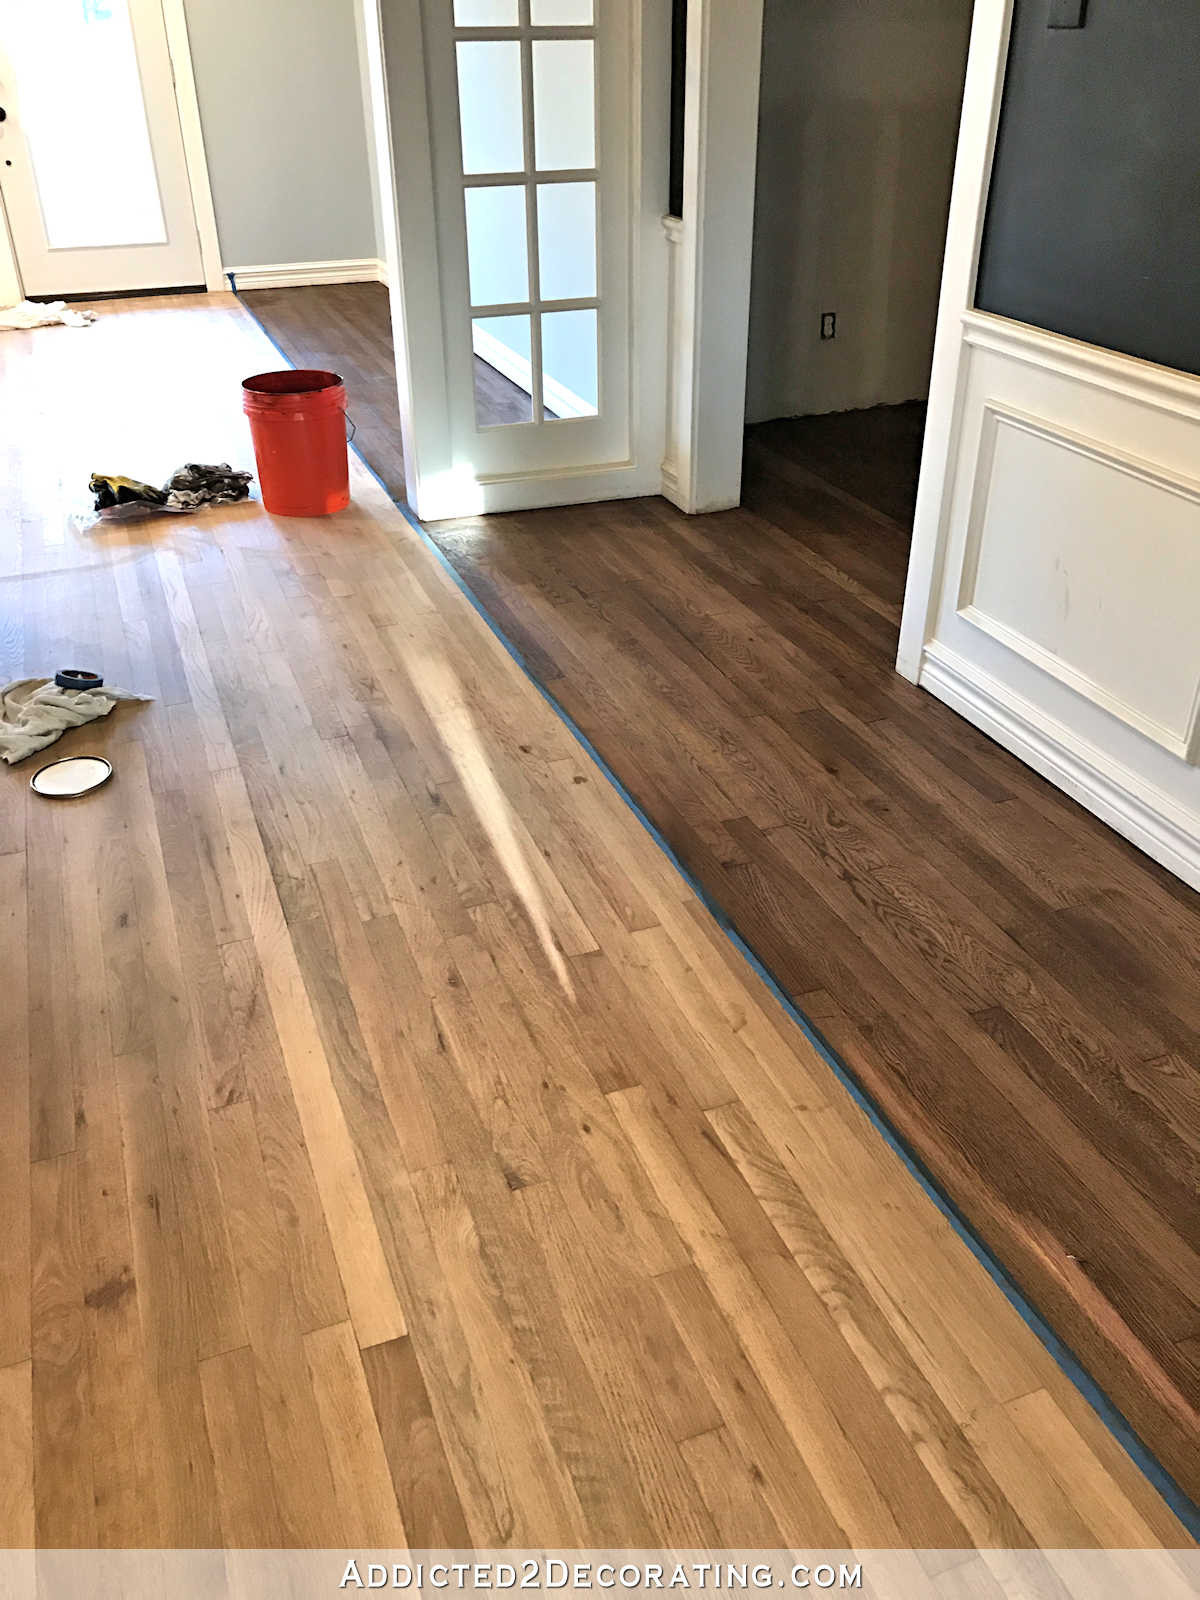 23 Unique Refinishing Old Hardwood Floors Diy Unique